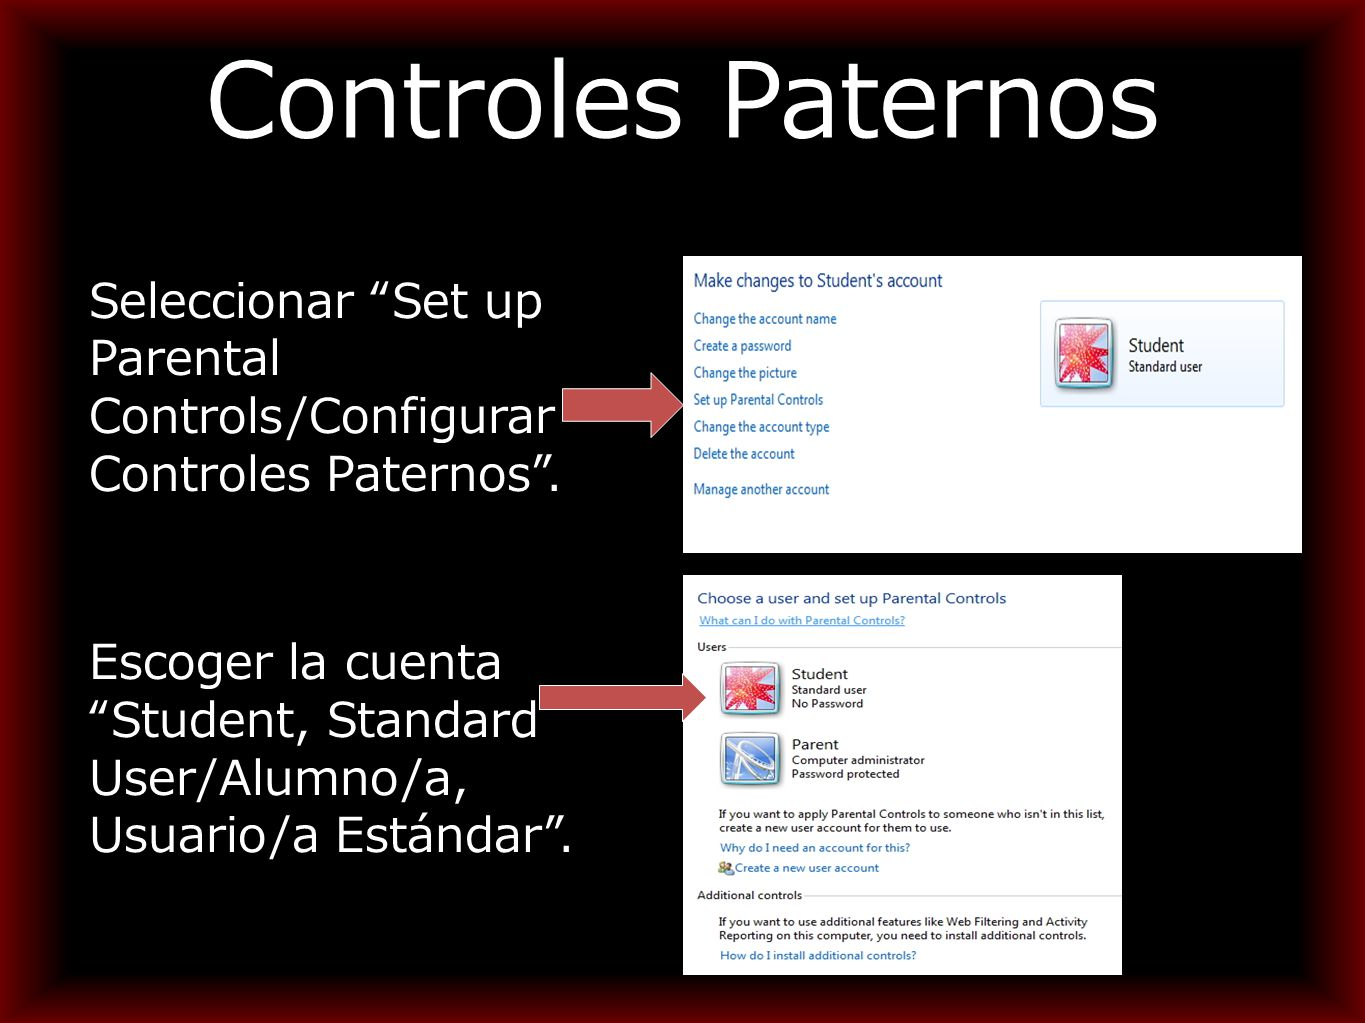 Controles Paternos Seleccionar Set up Parental Controls/Configurar Controles Paternos .